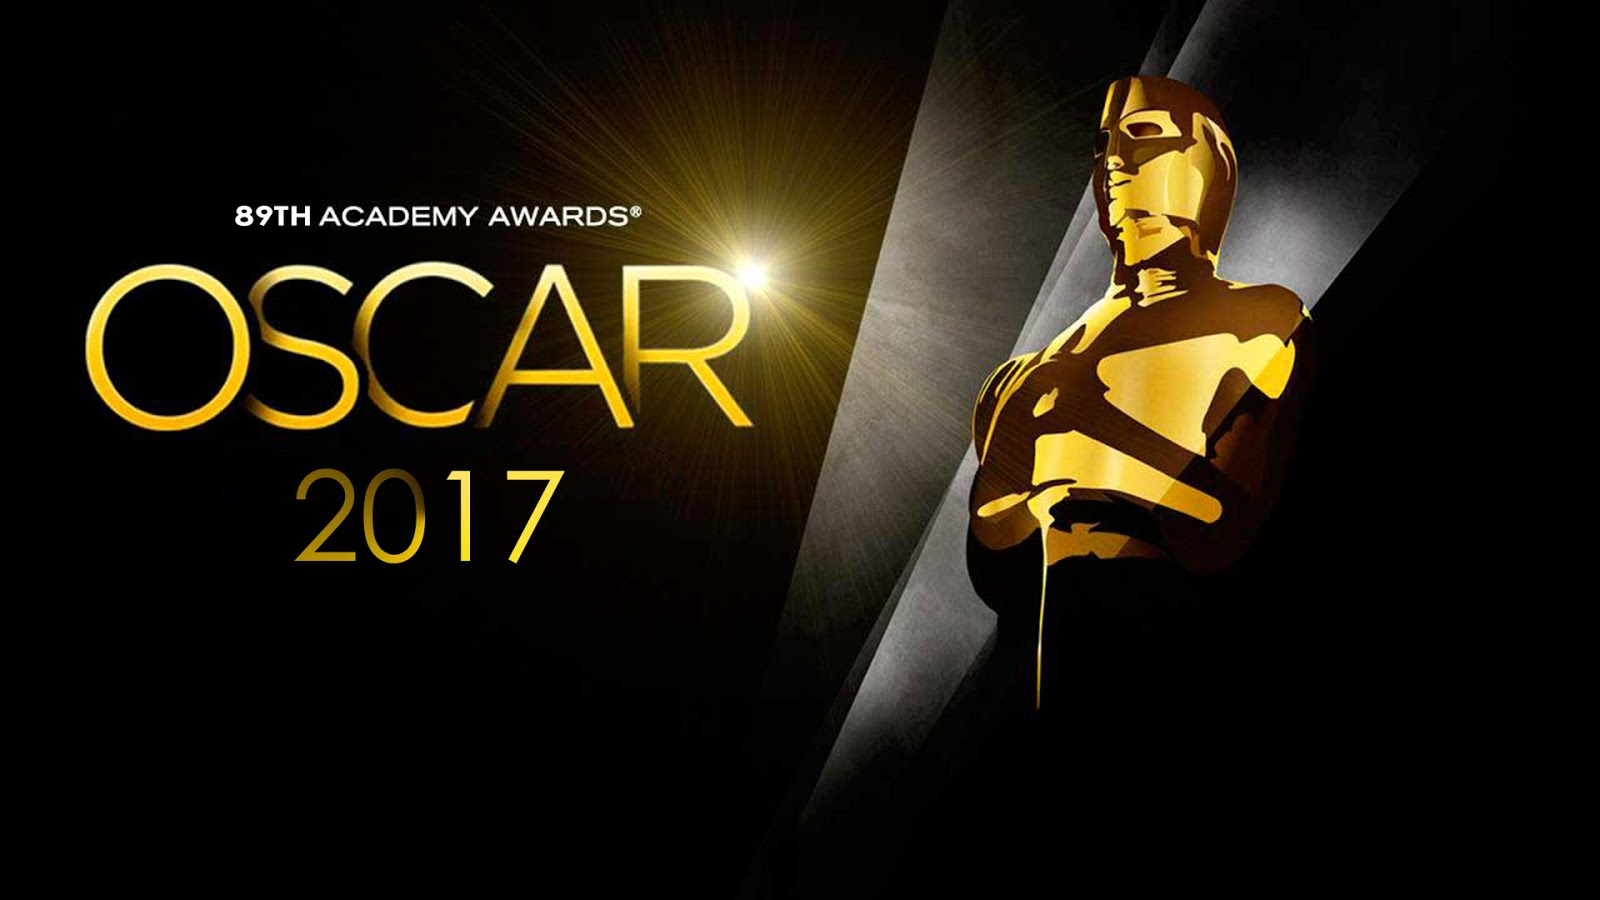 Oscar Predictions 2017 - Amanda welcomes new guest, Joe Liles, and returning guests Colleen and Stephen to make their predictions for this year's Academy Awards. Joe may have to watch My Life as a Zucchini in French with no subtitles, Colleen has no opinion about the Sound categories and we don't blame her, Stephen sticks with OJ—the documentary, not the person, and Amanda is very concerned about the safety of the characters in the Animated Short, Pearl. Plus, no one likes Fire at Sea.